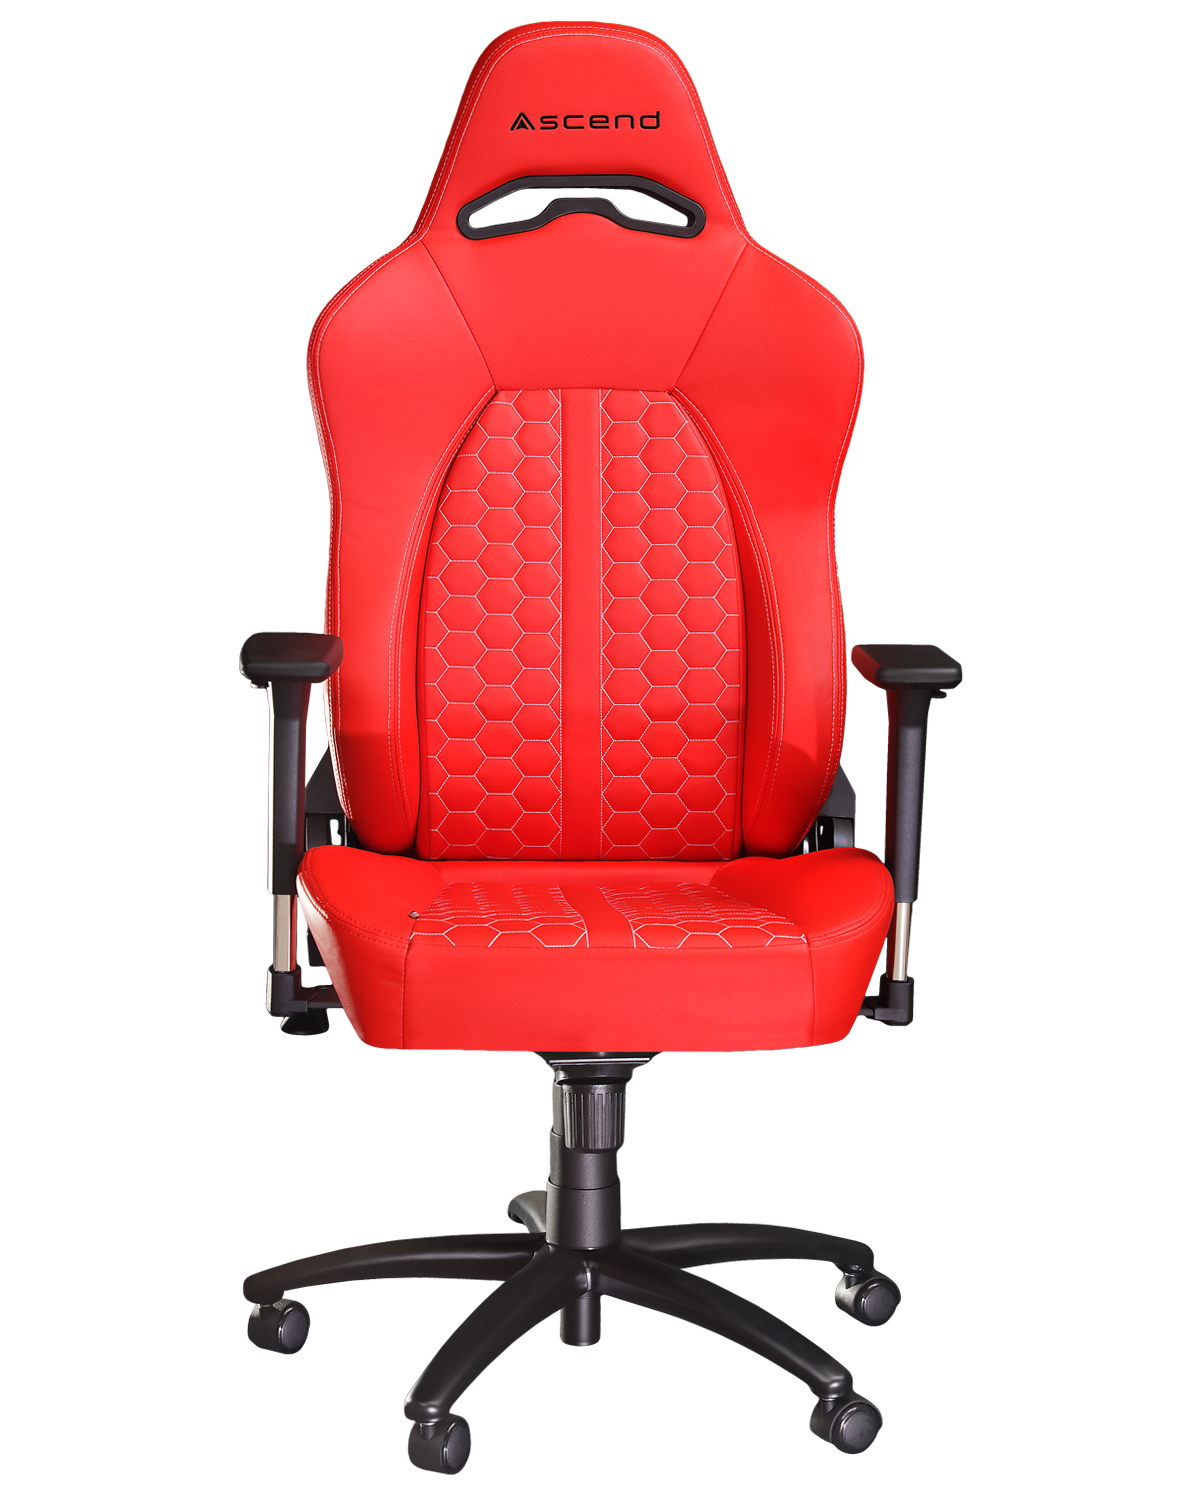 Cool Emperor Red Ascend Gaming Chairs Machost Co Dining Chair Design Ideas Machostcouk